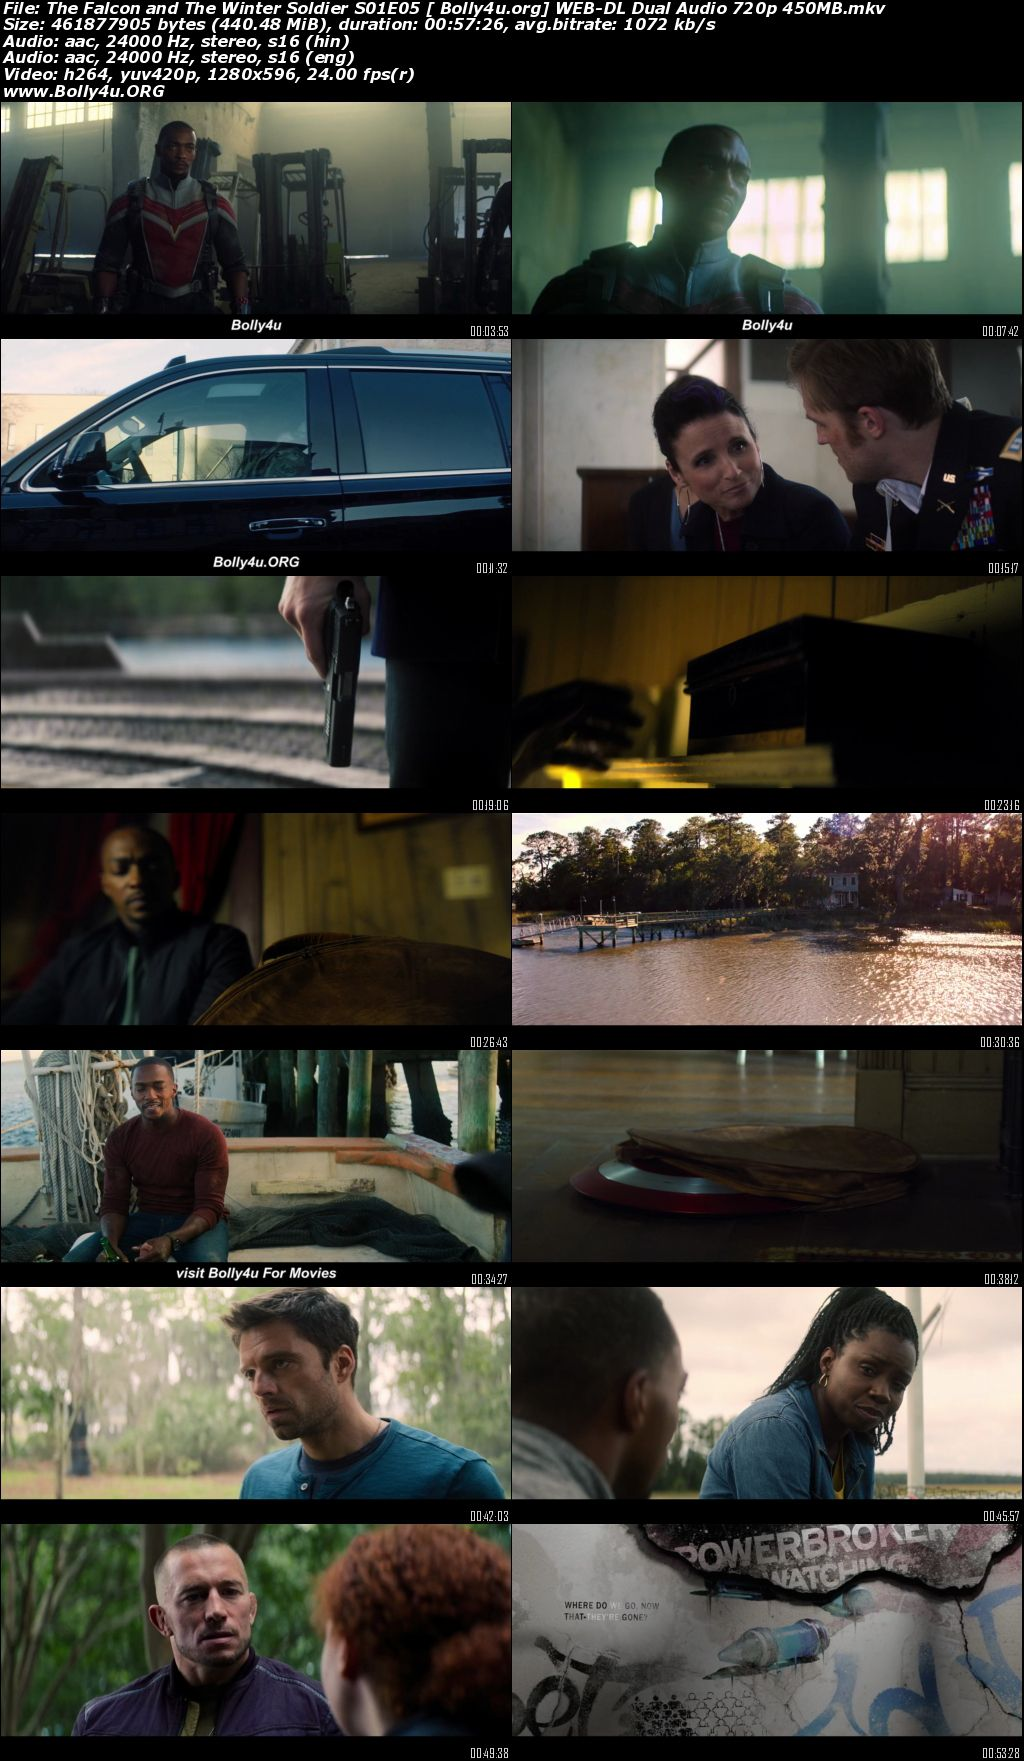 The Falcon and the Winter Soldier 2021 WEB-DL Hindi Dual Audio S01 Download 720p